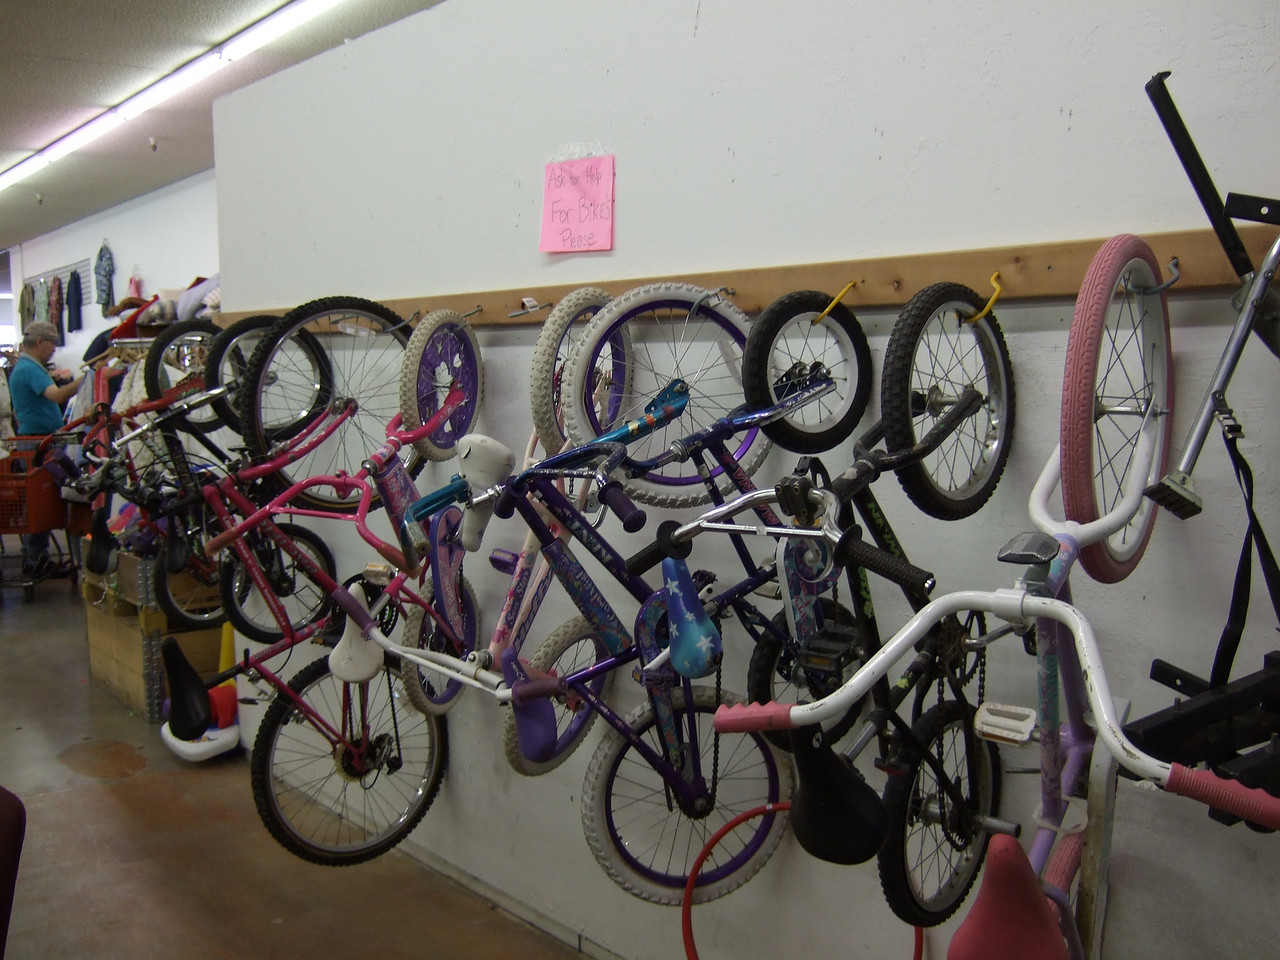 Bikes at the Washoe ARC Thrift Store at Kietzke Lane